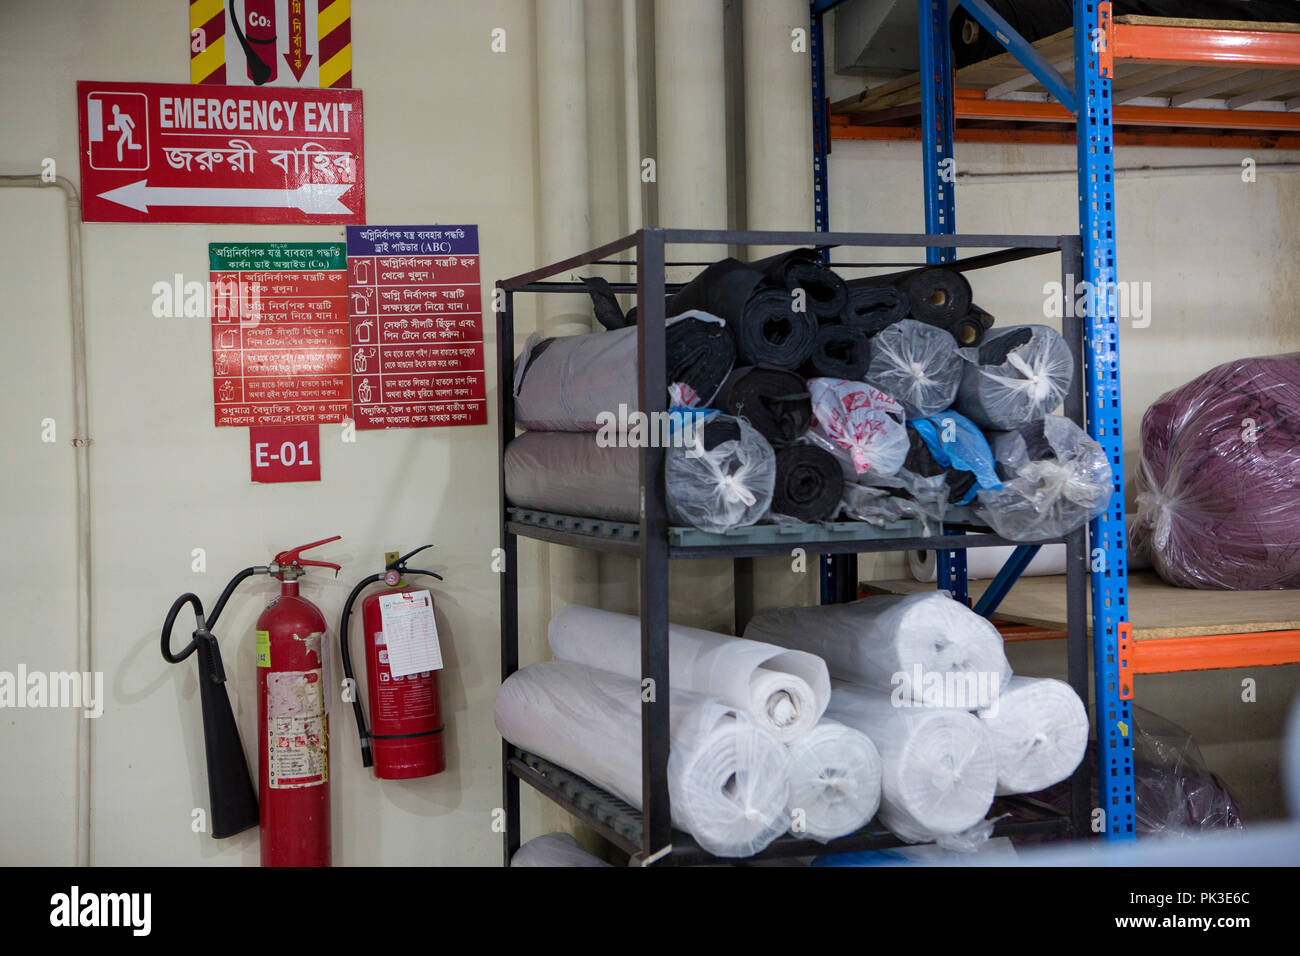 Fire extinguishers and emergency exit sign inside a garment factory in Bangladesh. - Stock Image